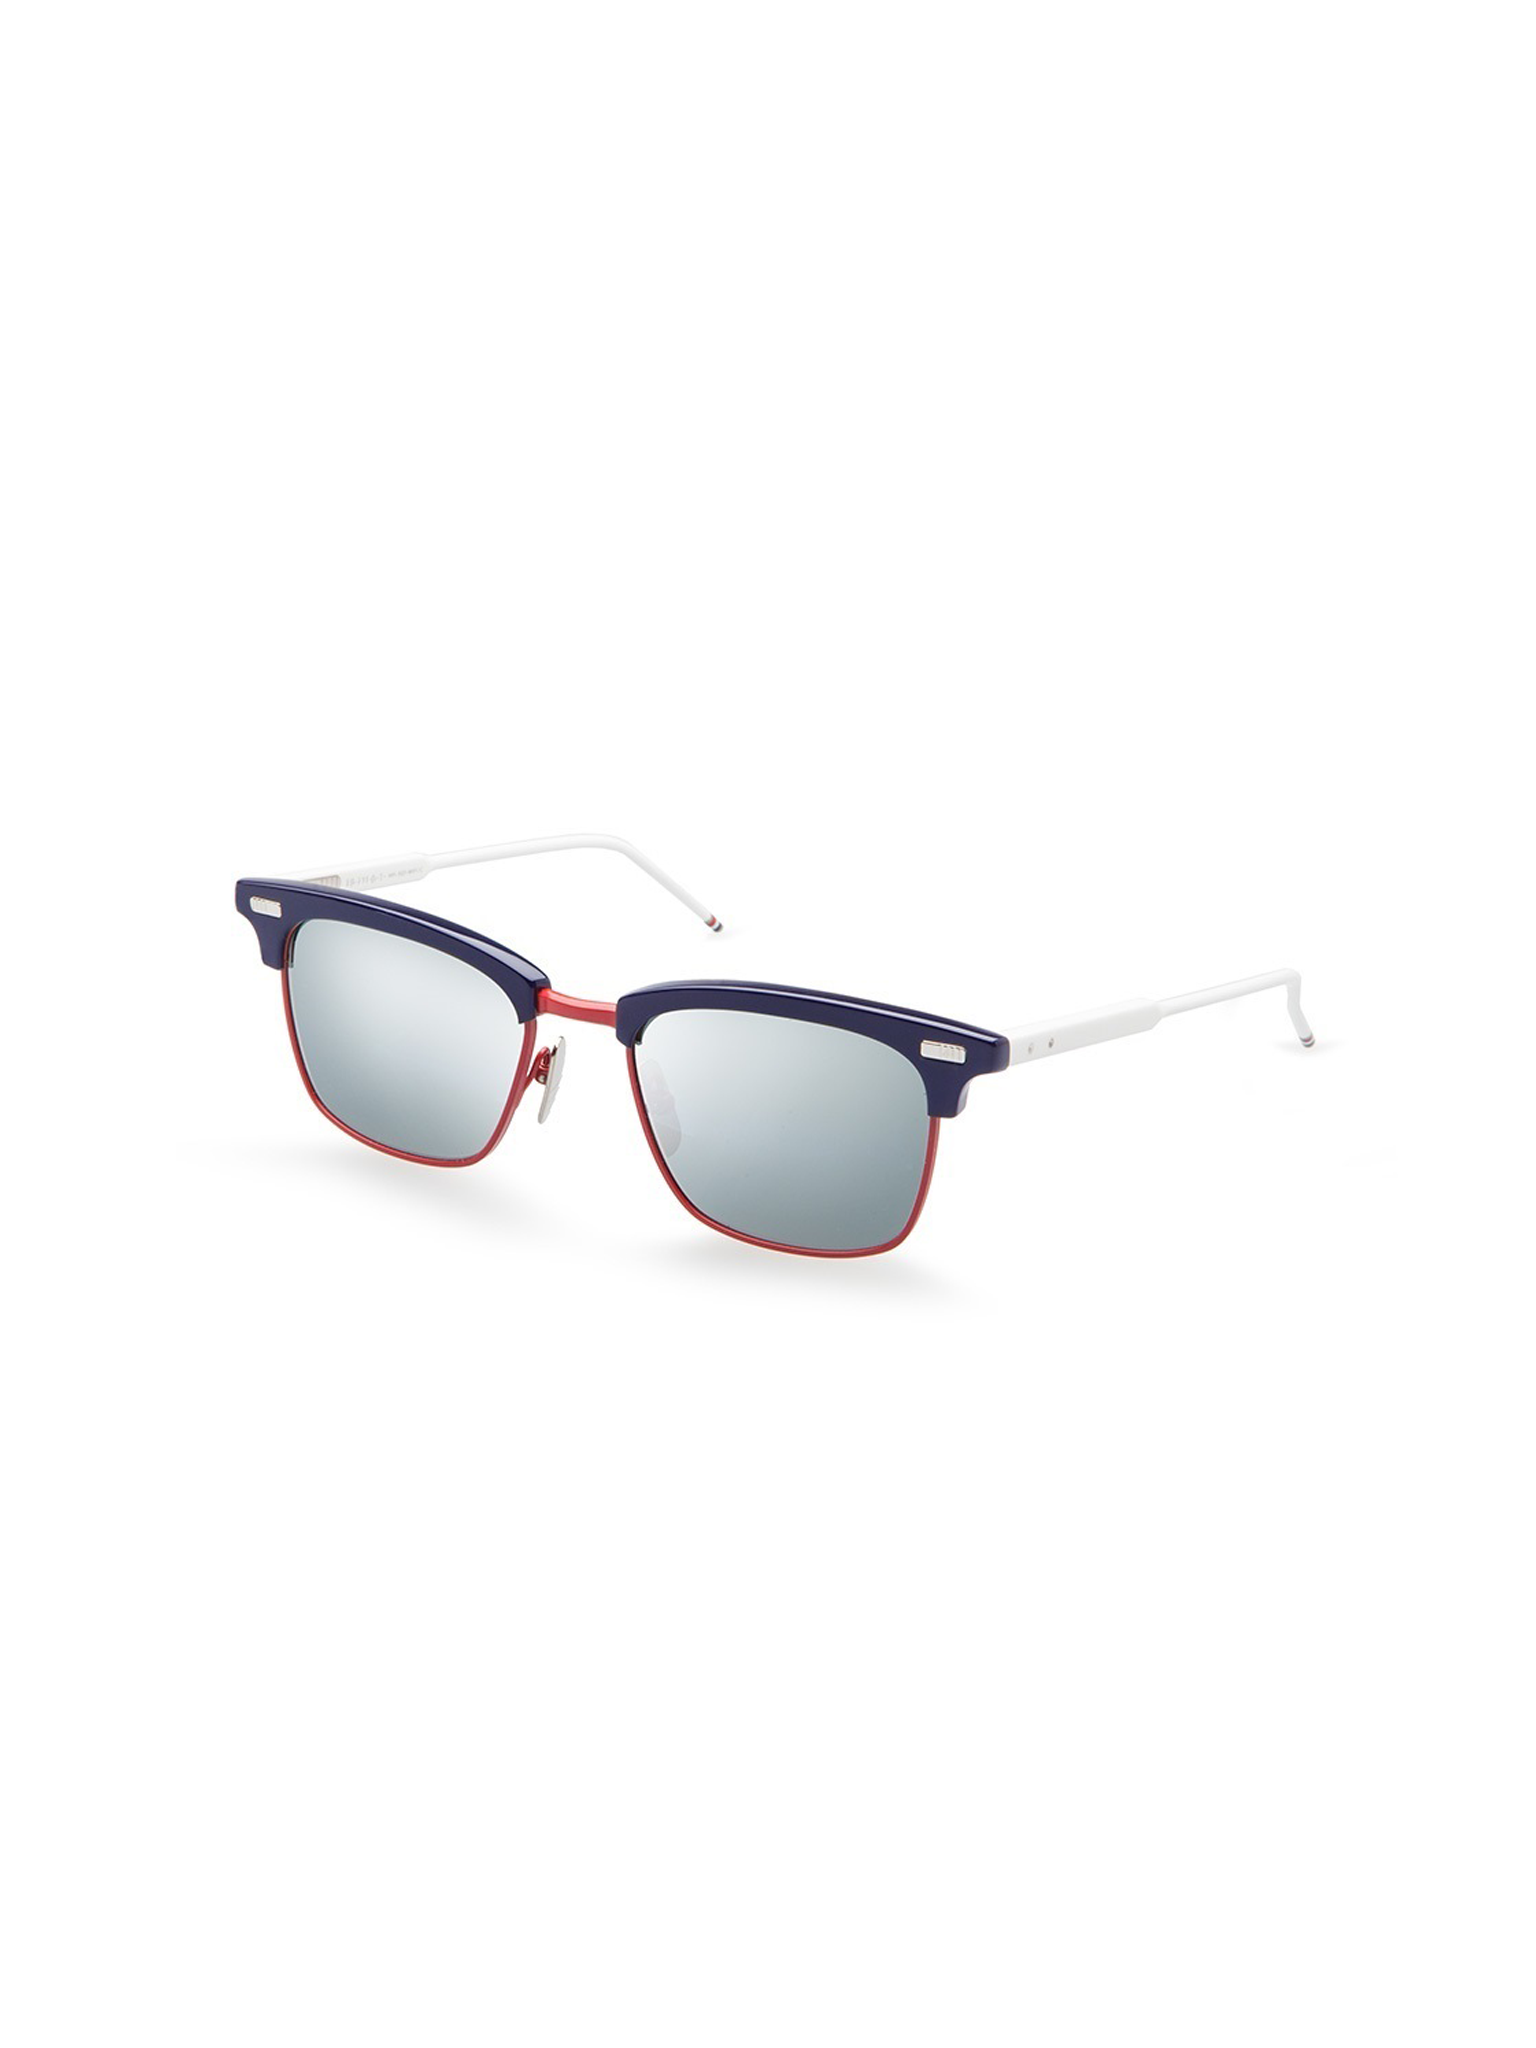 f2e6a1e26239 THOM BROWNE TBS-711-D-T-NVY-RED-WHT-52 SUNGLASSES